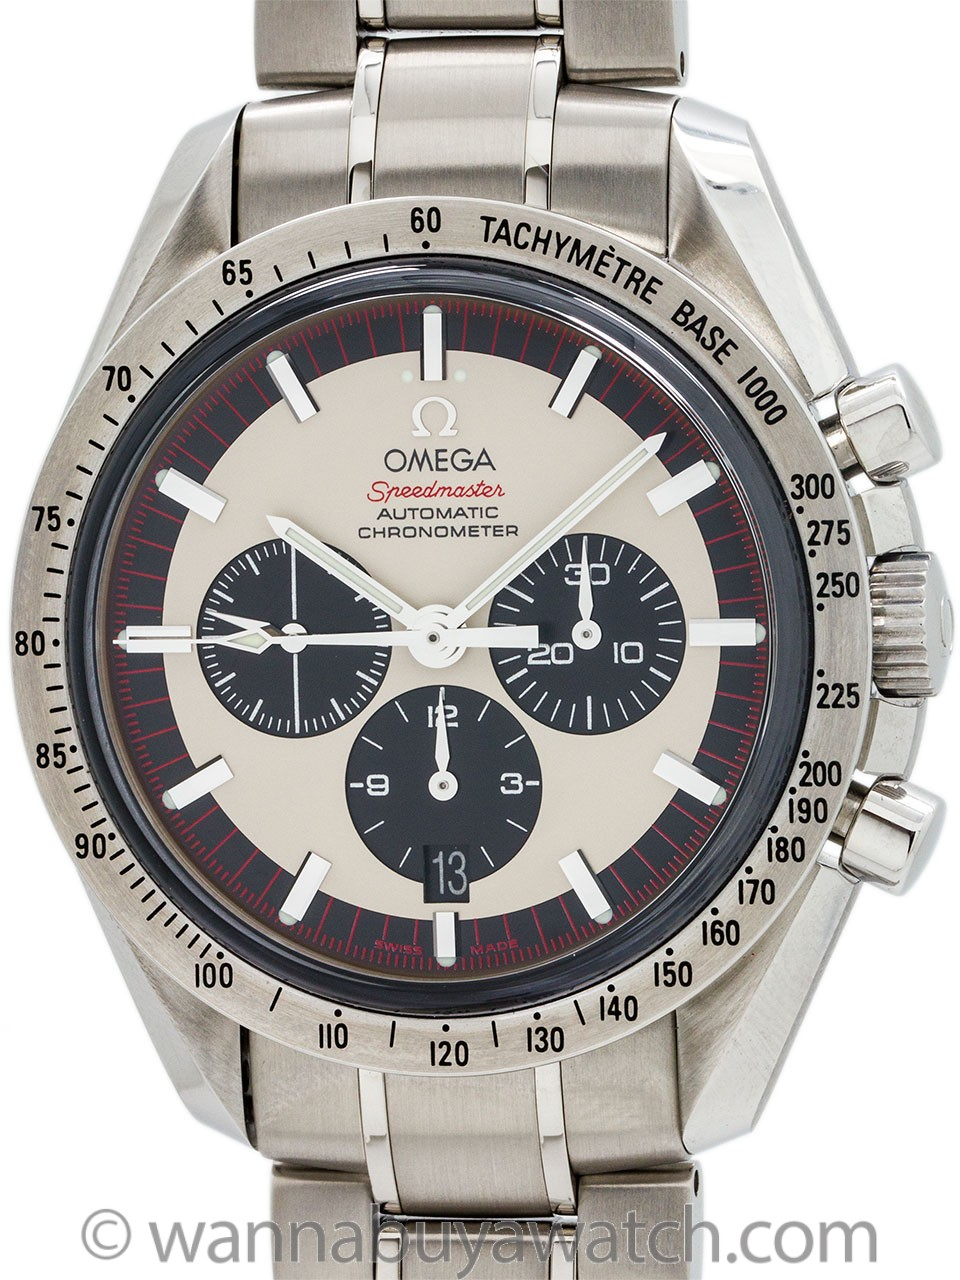 Omega Speedmaster Michael Schumacher The Legend circa 2004